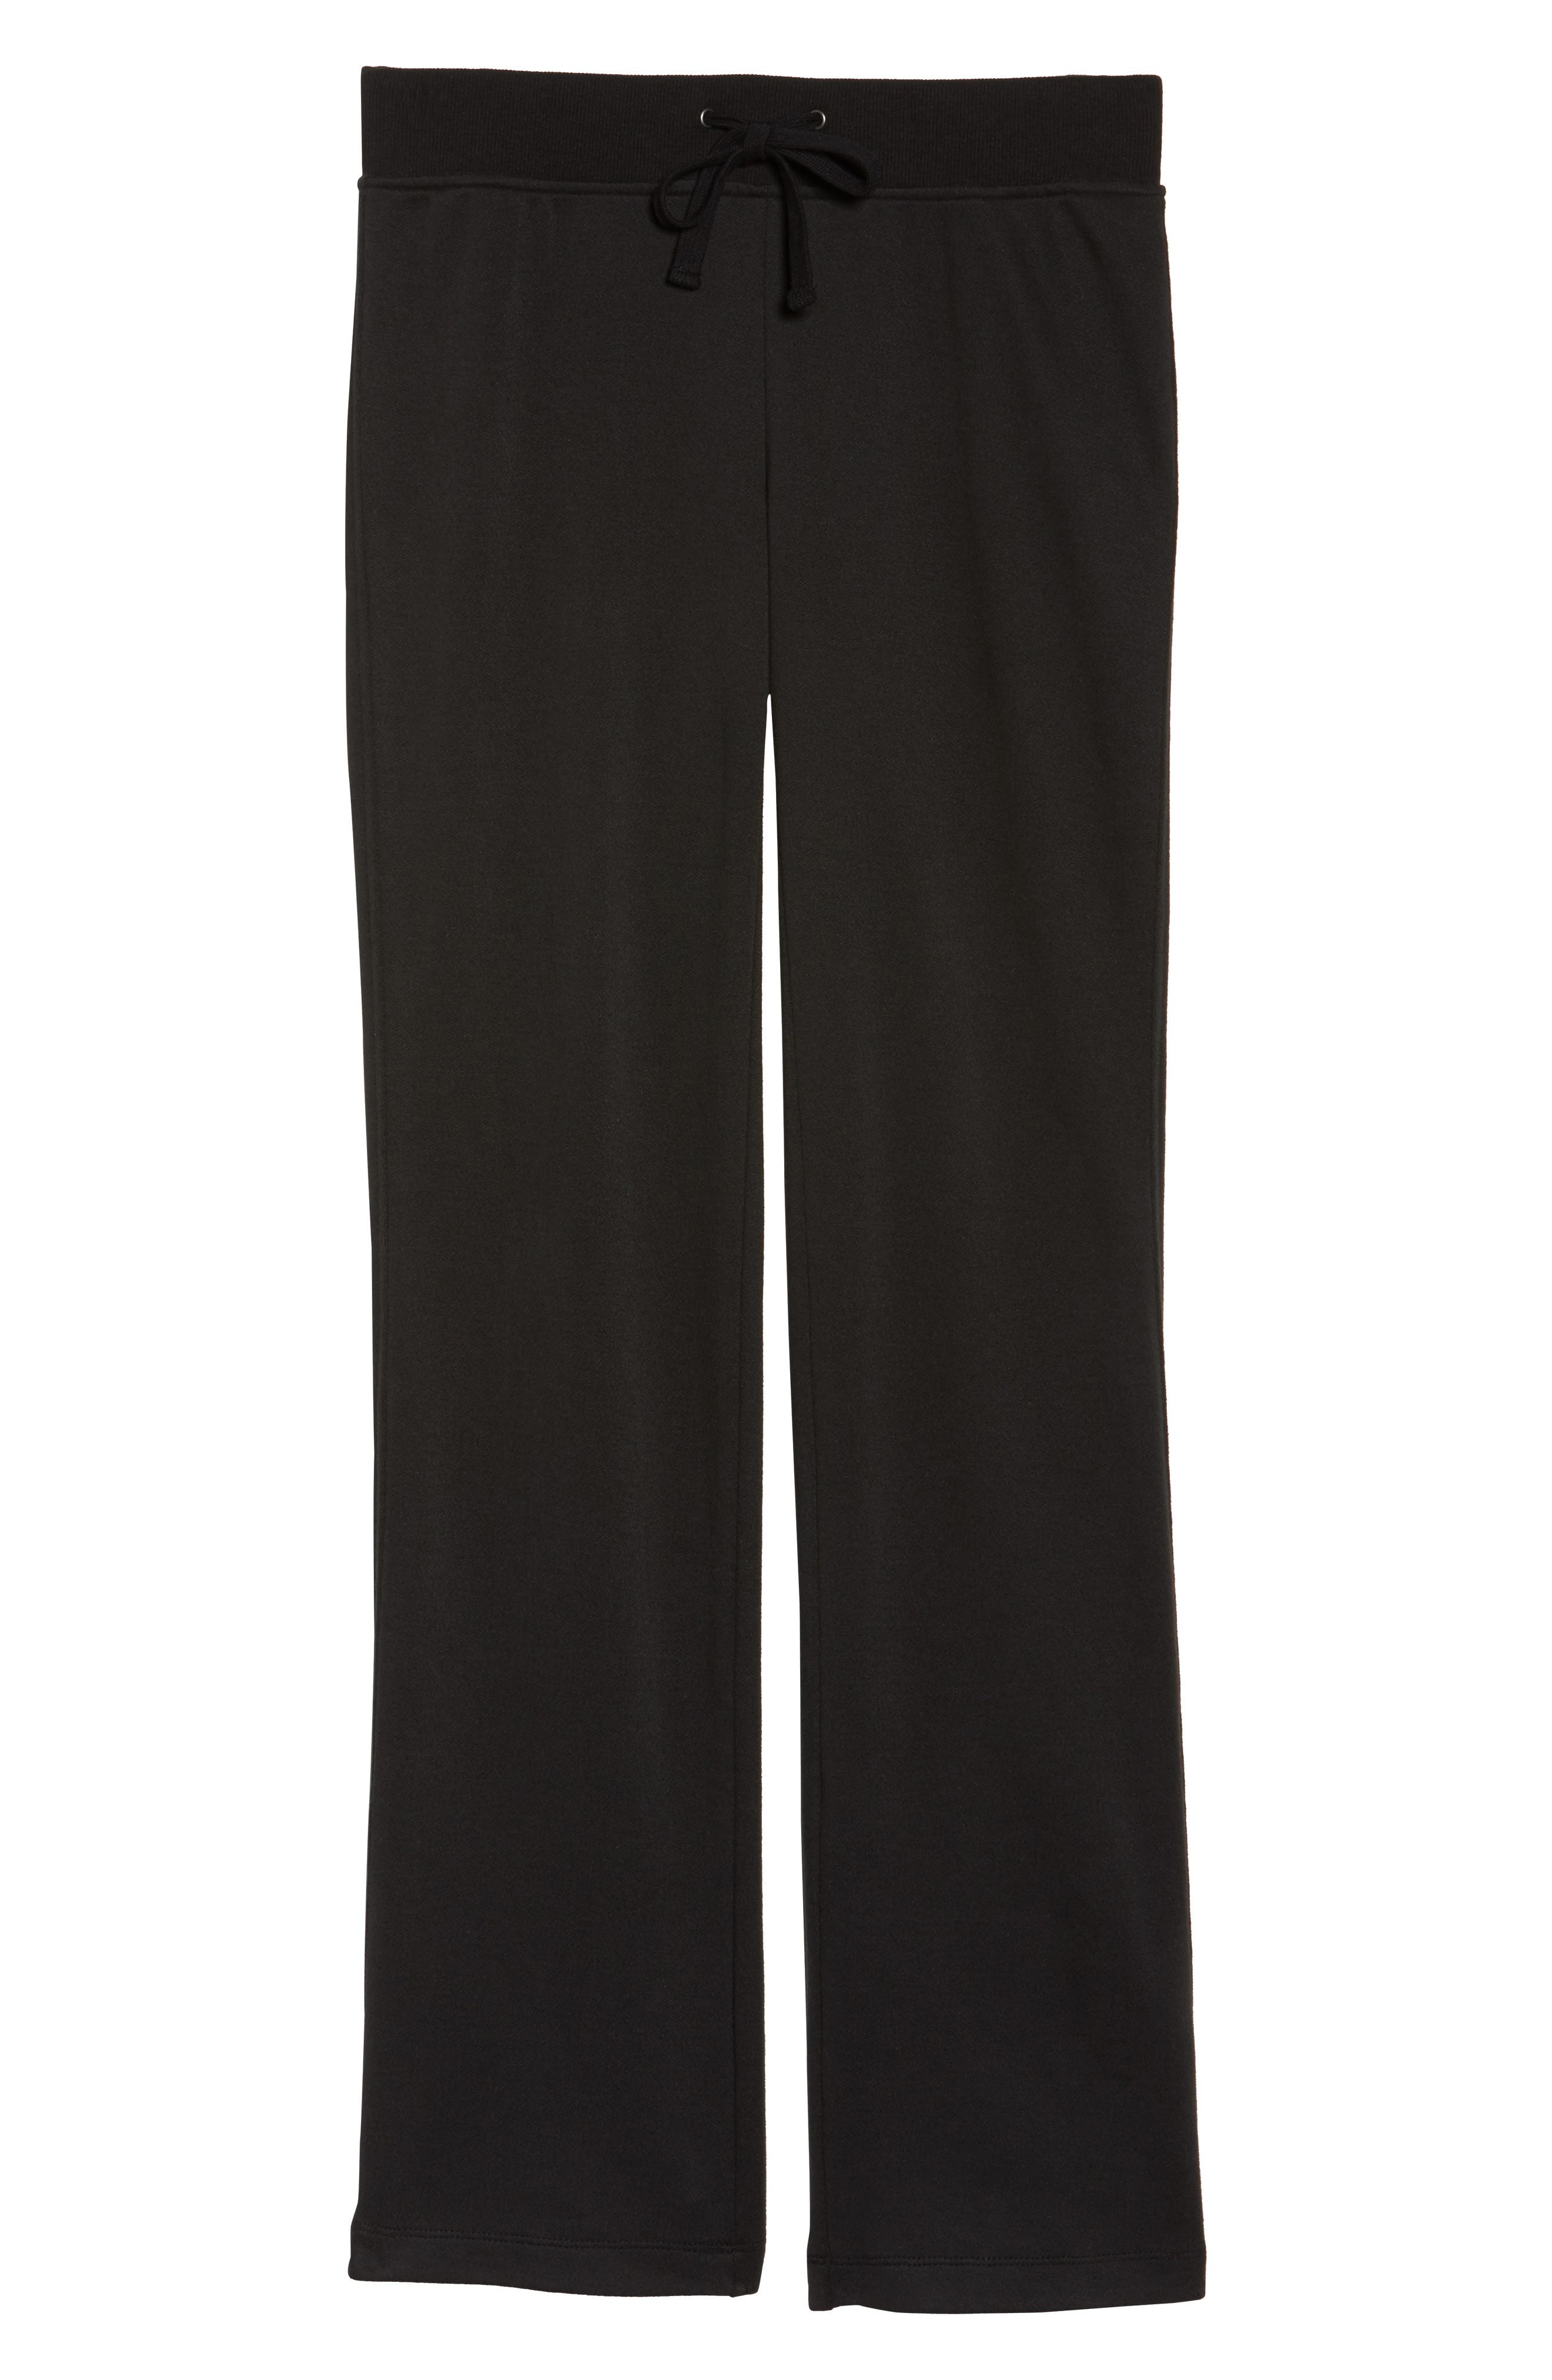 Penny Lounge Pants,                             Alternate thumbnail 6, color,                             BLACK